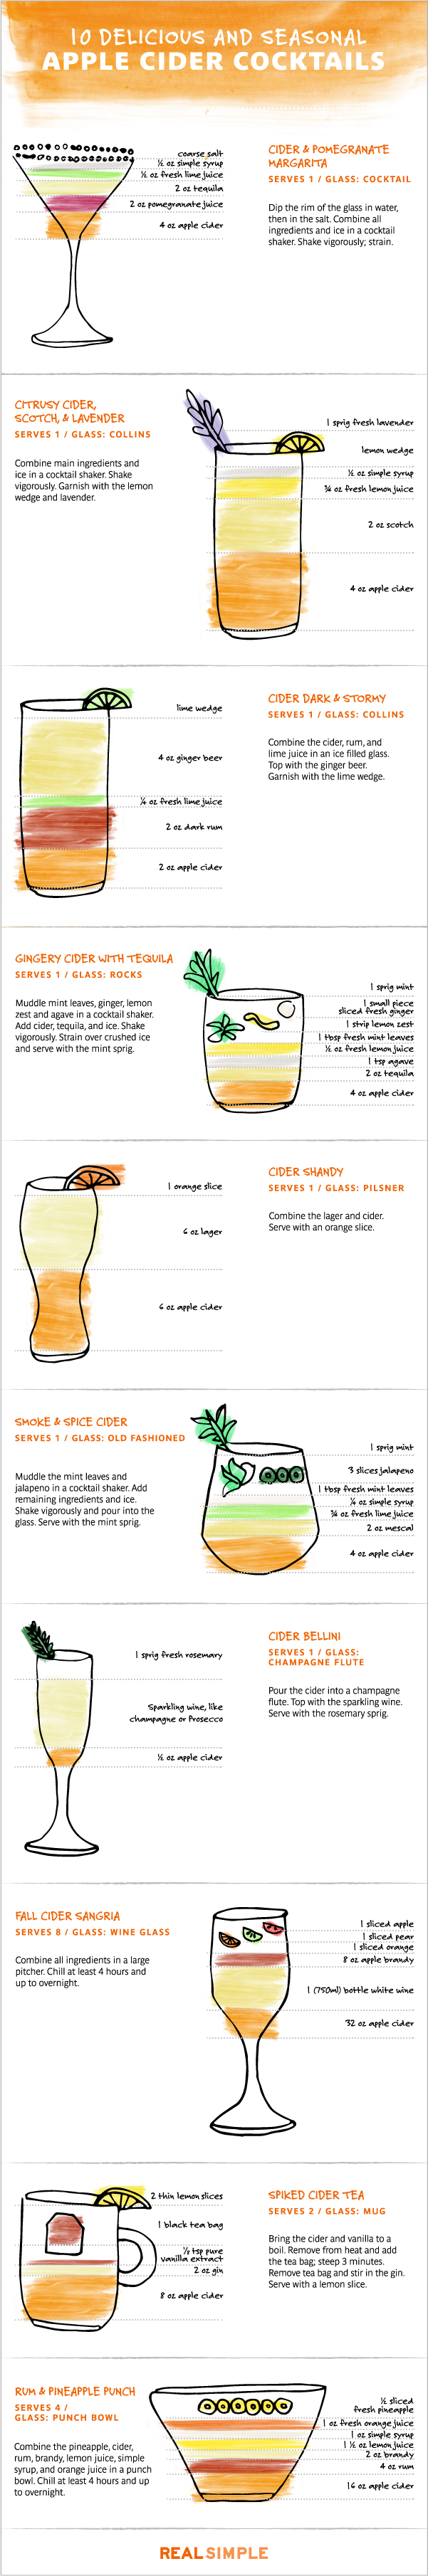 apple cider infographic